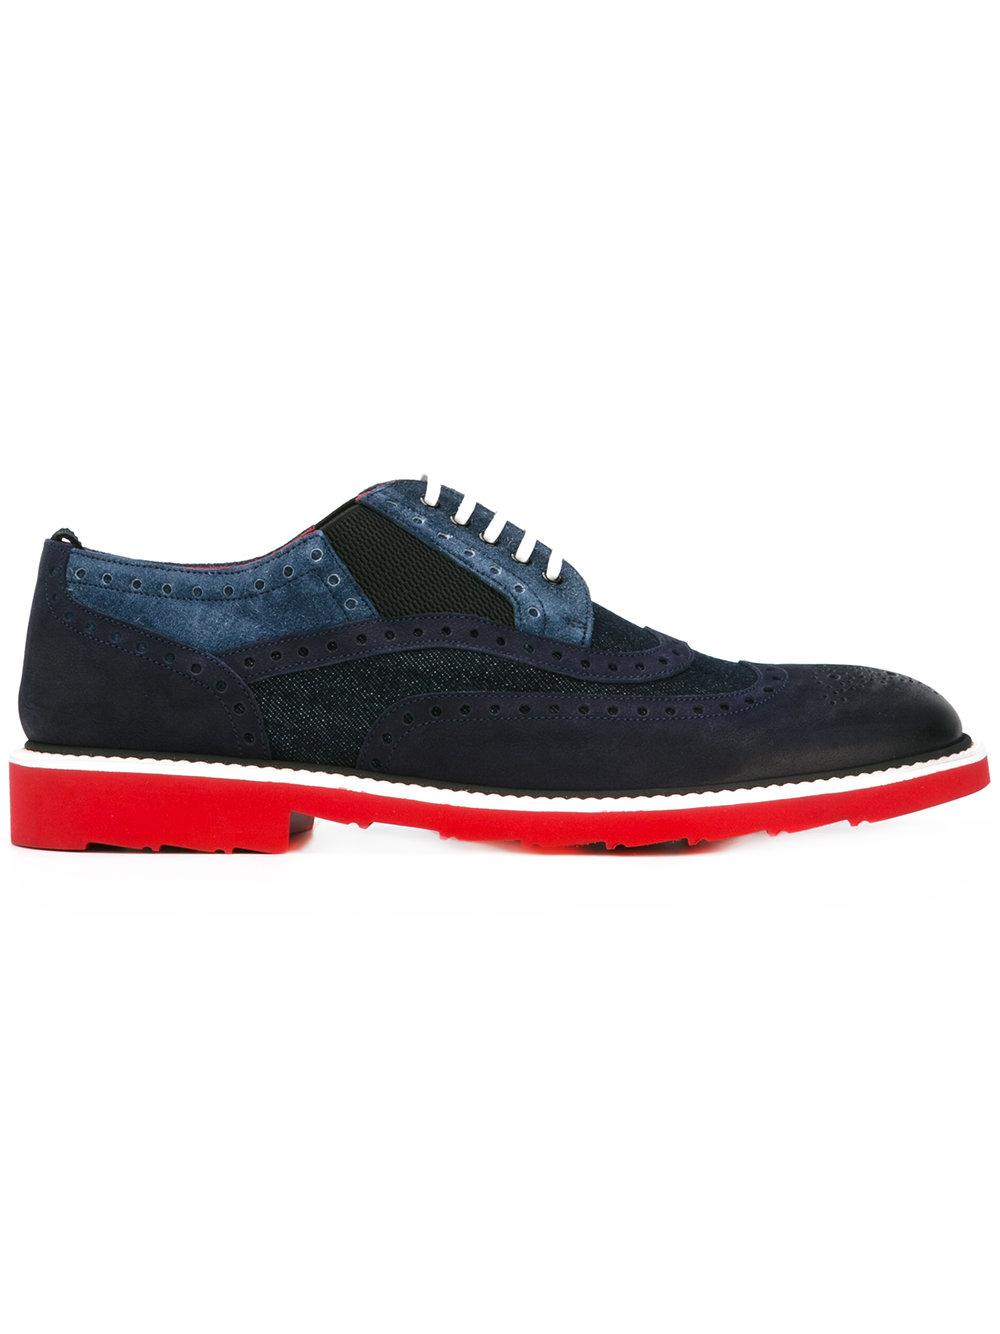 Docle Gabbana Brushed Suede Shoes